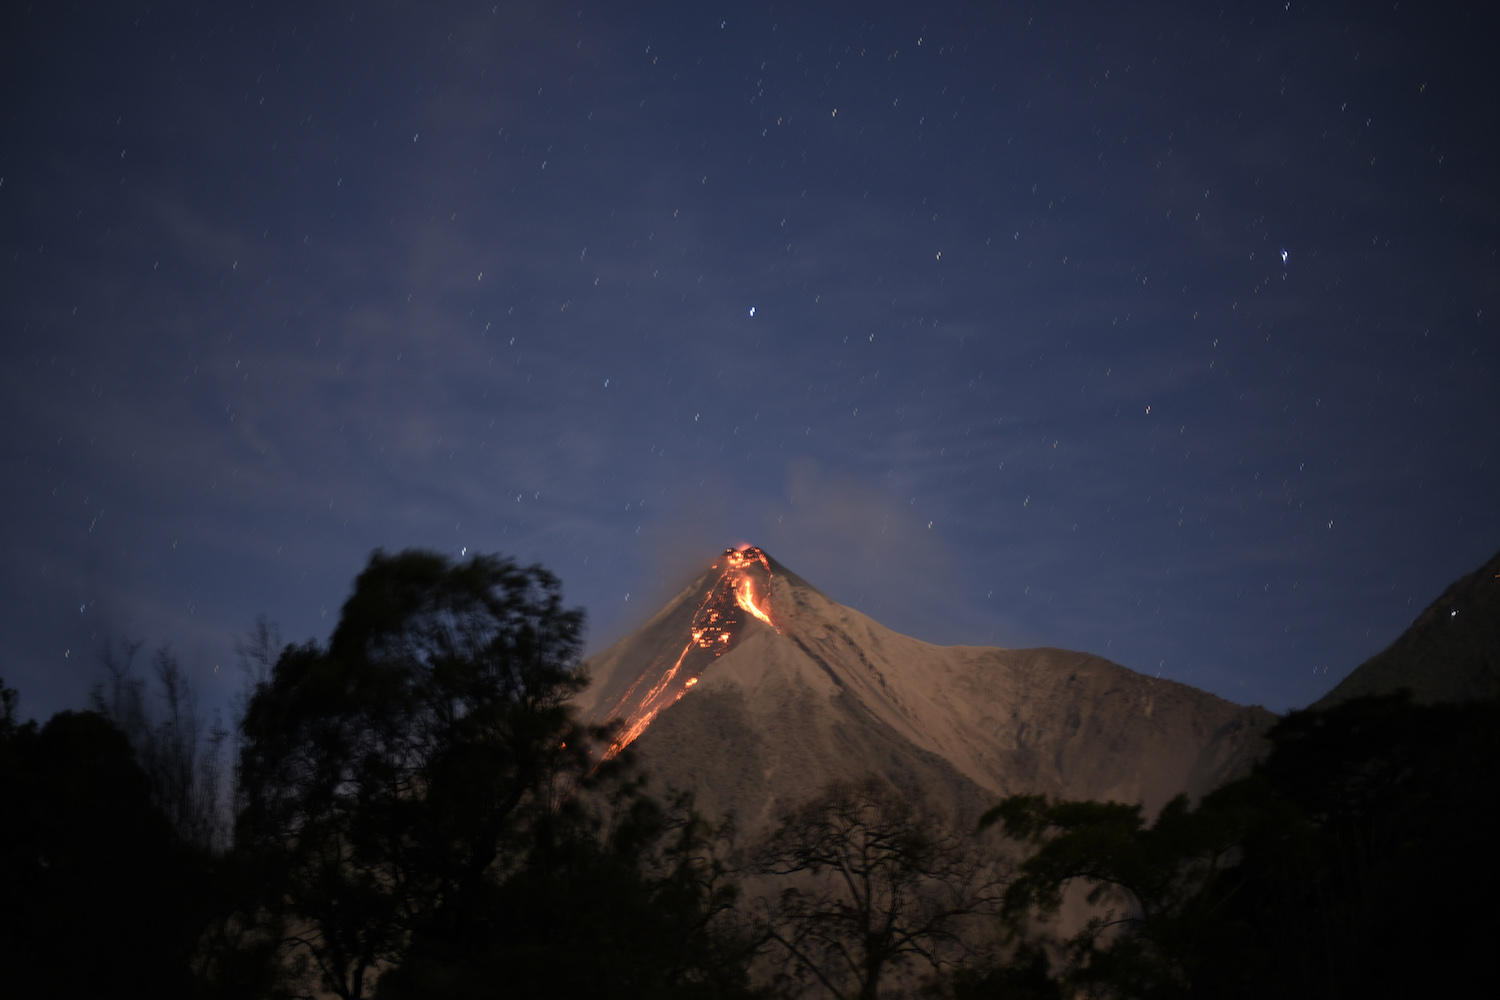 TOPSHOT - The Fuego volcano spews ash, as seen from the city of Alotenango in Sacatepequez departament, 65 km southeast of Guatemala City, on February 1, 2018.  The Fuego volcano, located 35 kilometres southeast of the Guatemalan capital, increased its eruptive activity, spewing ash that reached several villages, civil protection reported. / AFP PHOTO / JOHAN ORDONEZ        (Photo credit should read JOHAN ORDONEZ/AFP/Getty Images)